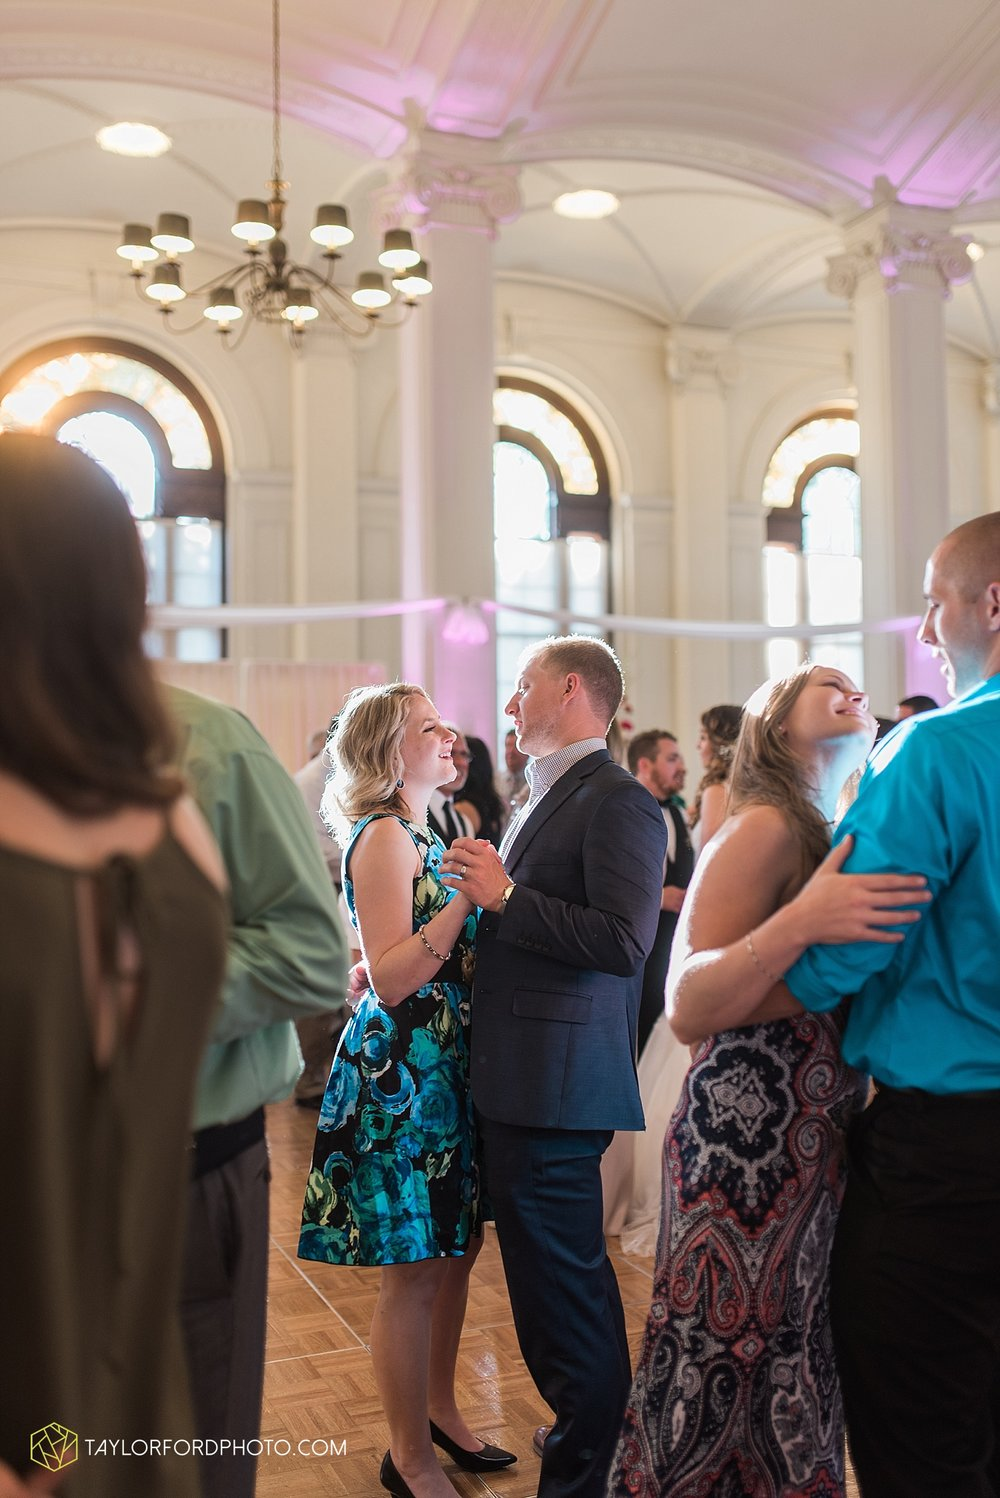 terre-haute-indiana-wedding-photographer-taylor-ford-photography-saint-marys-of-the-woods-college-weddings_2951.jpg